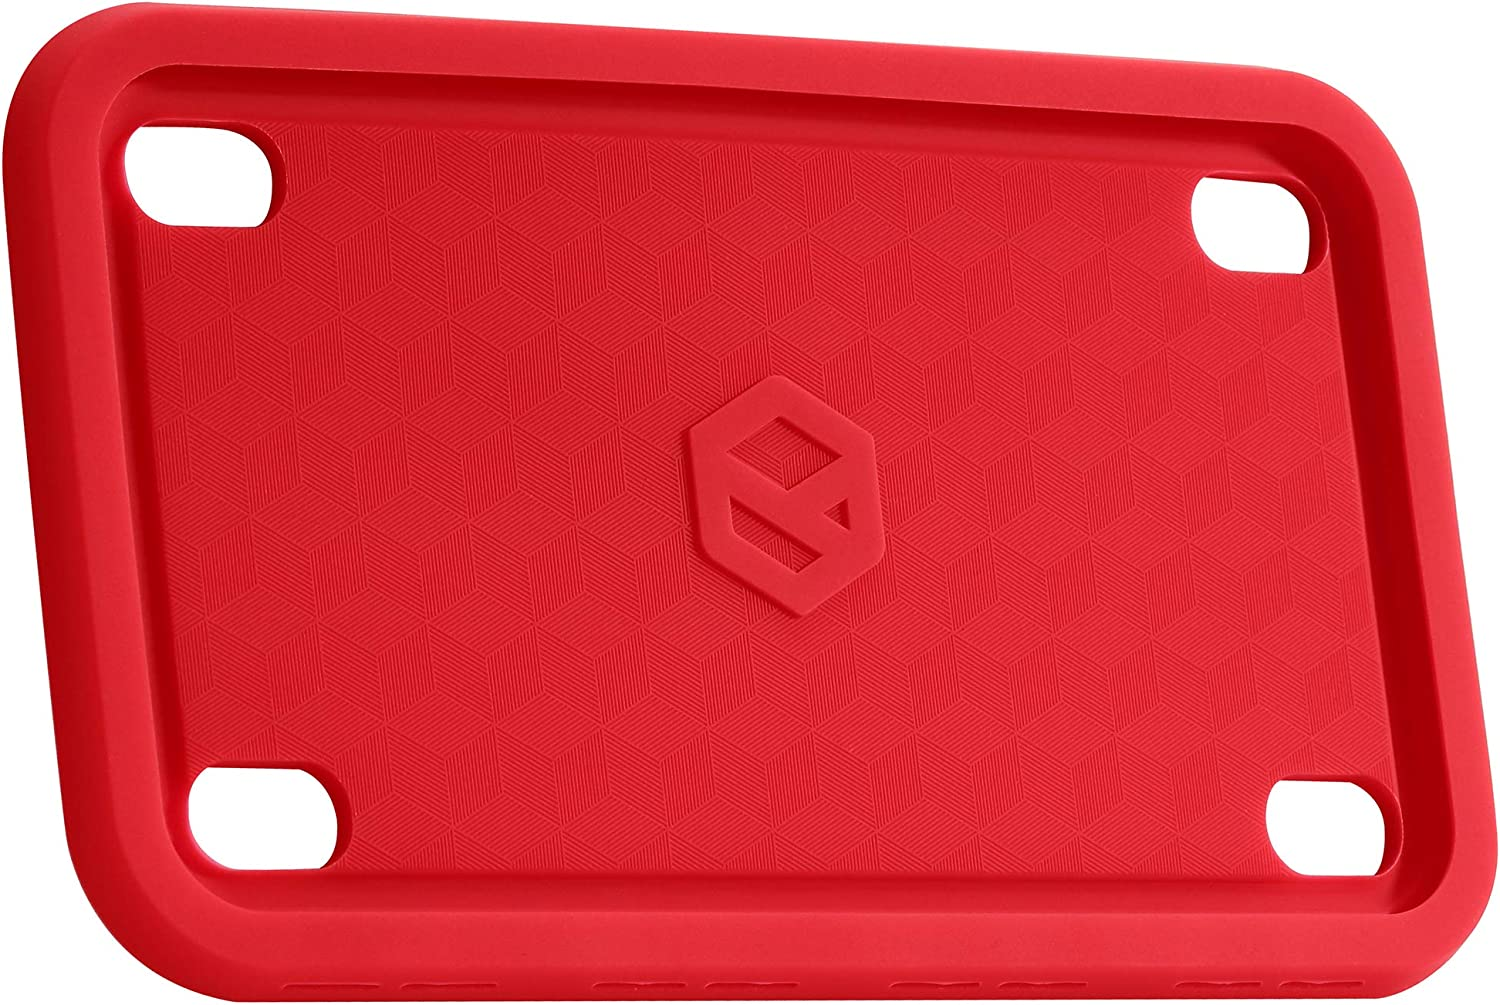 Rightcar Solutions Motorcycle Silicone License Rus 1 Max 53% OFF year warranty - Frame Plate